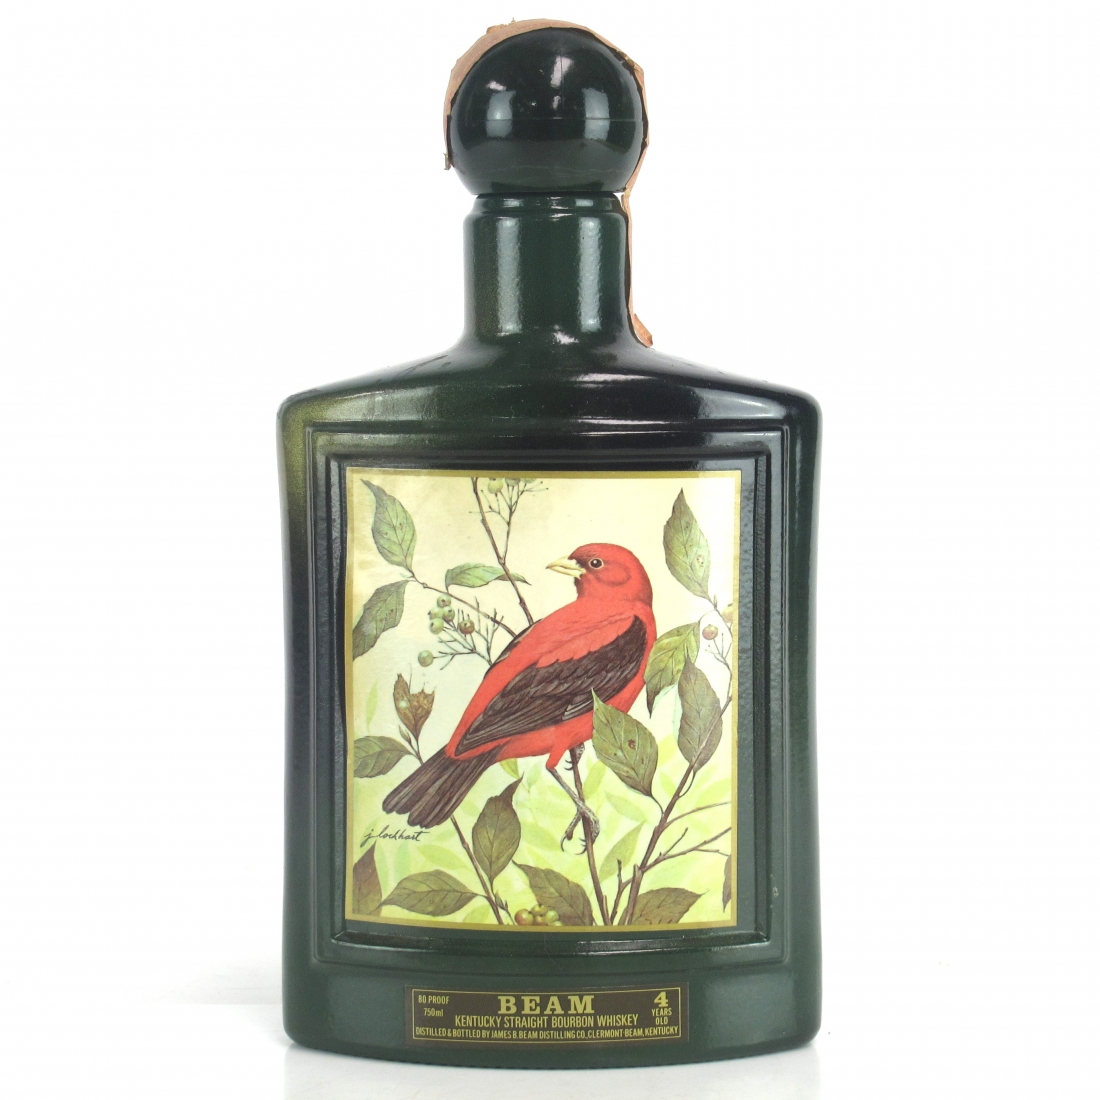 Jim Beam 4 Year Old Decanter 1980s / Scarlet Tanager